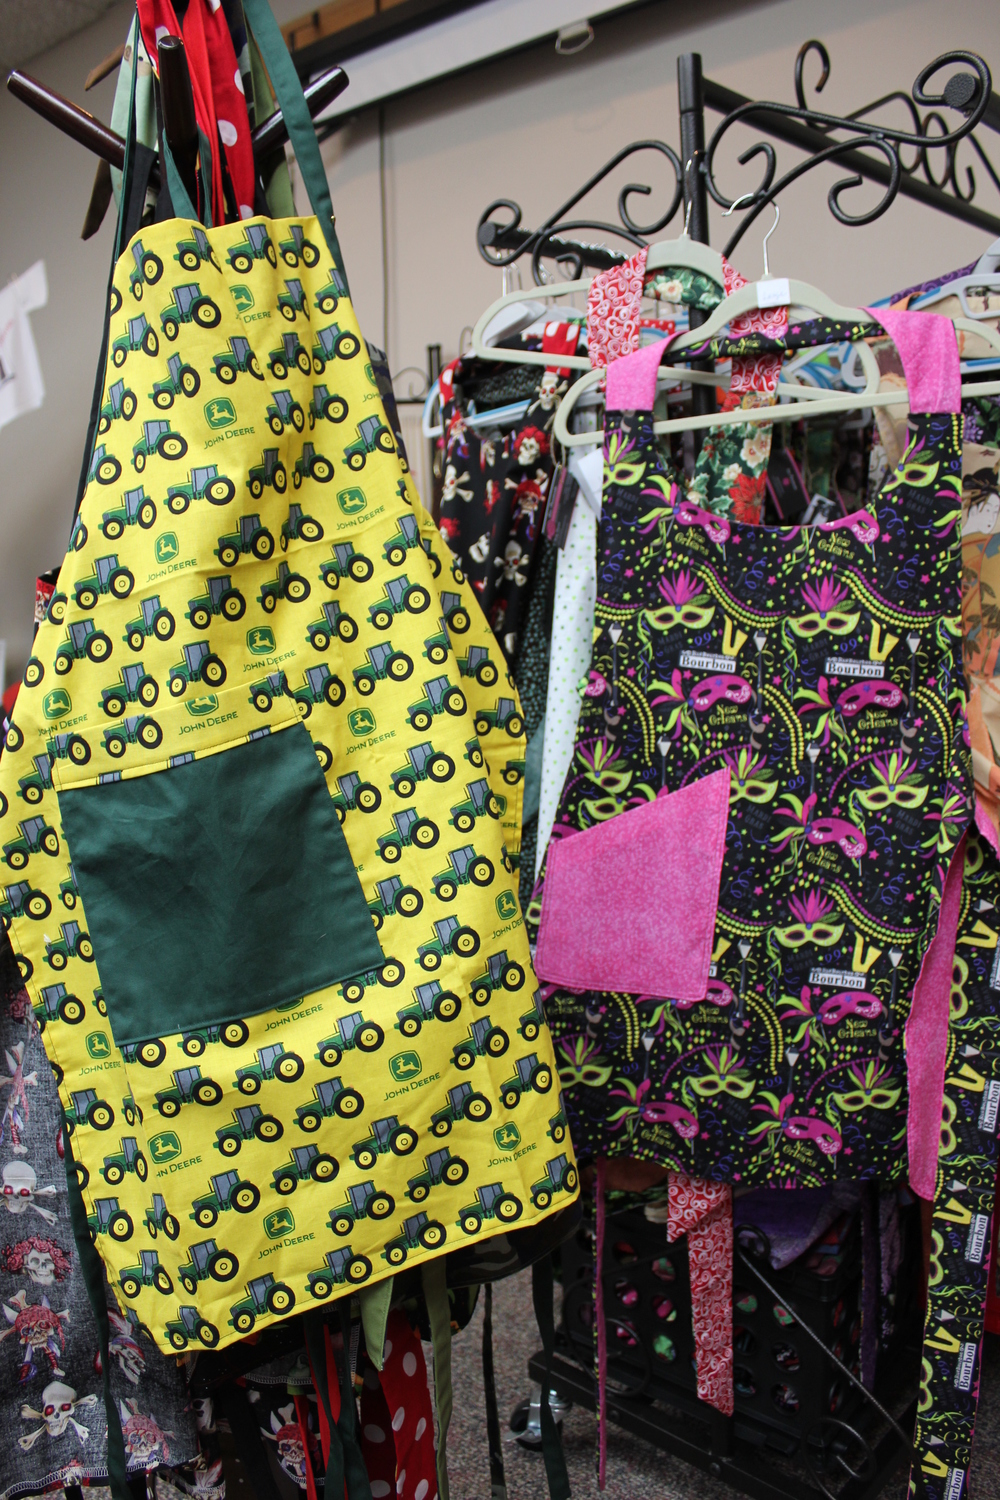 Handmade aprons from Sew Passionate.